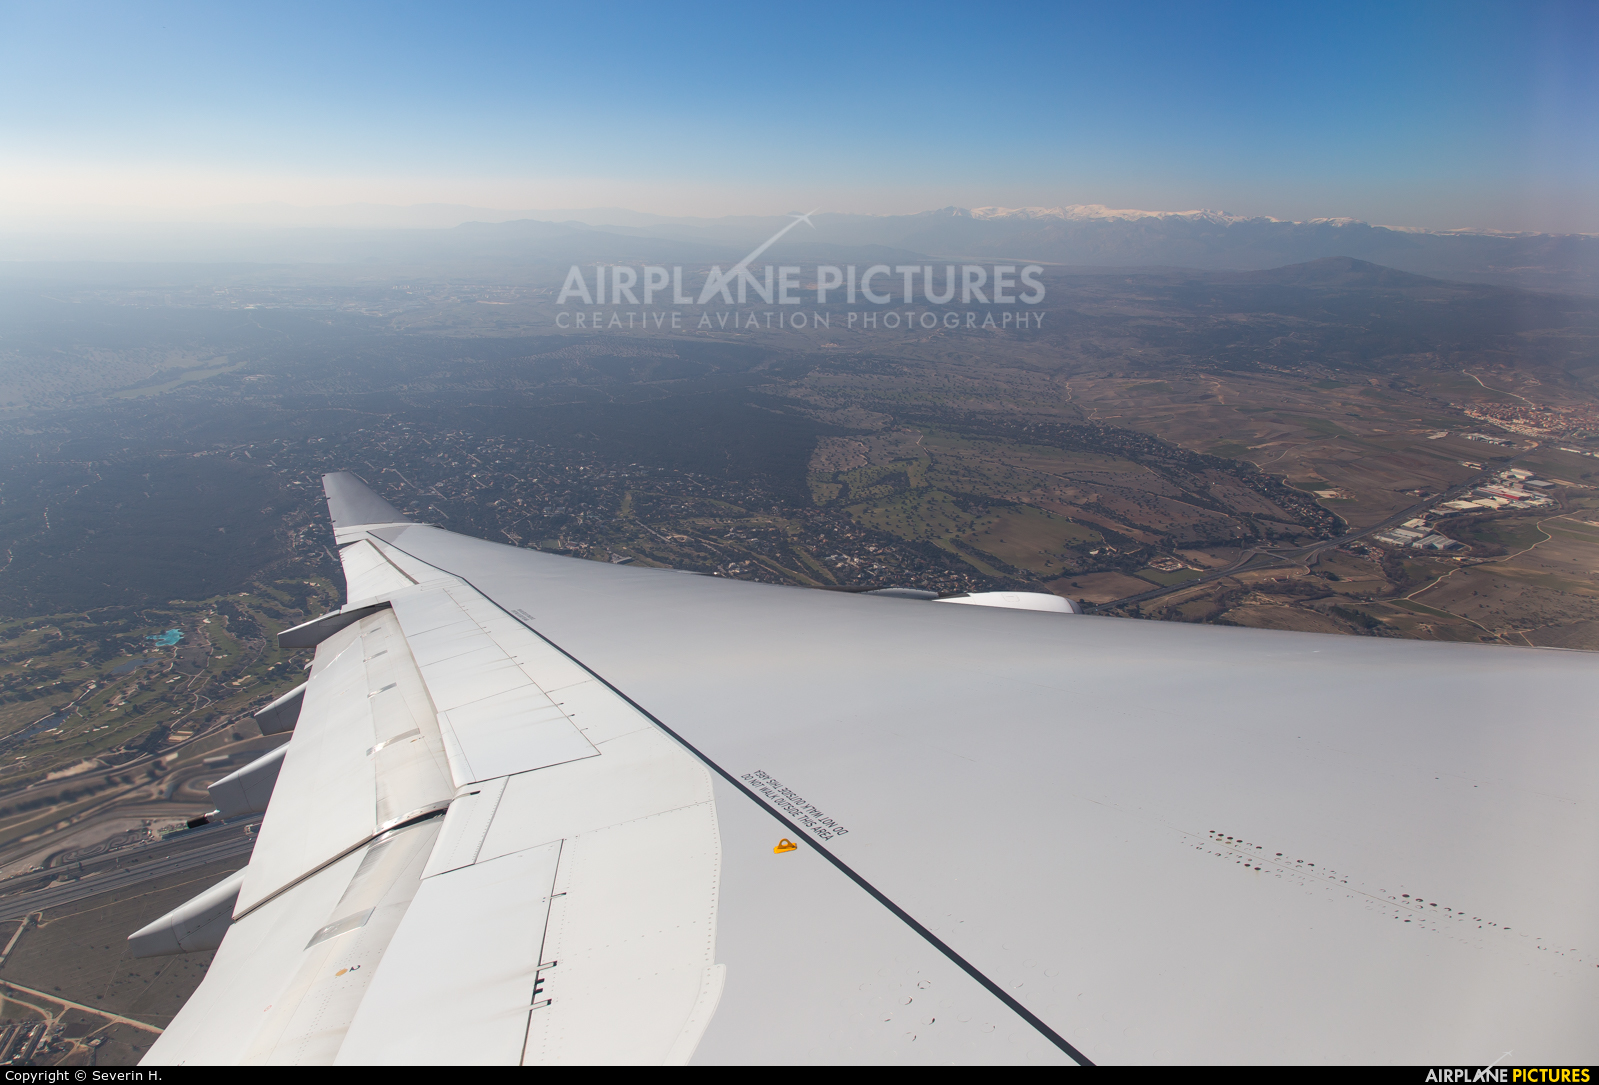 Iberia EC-LEU aircraft at In Flight - Spain